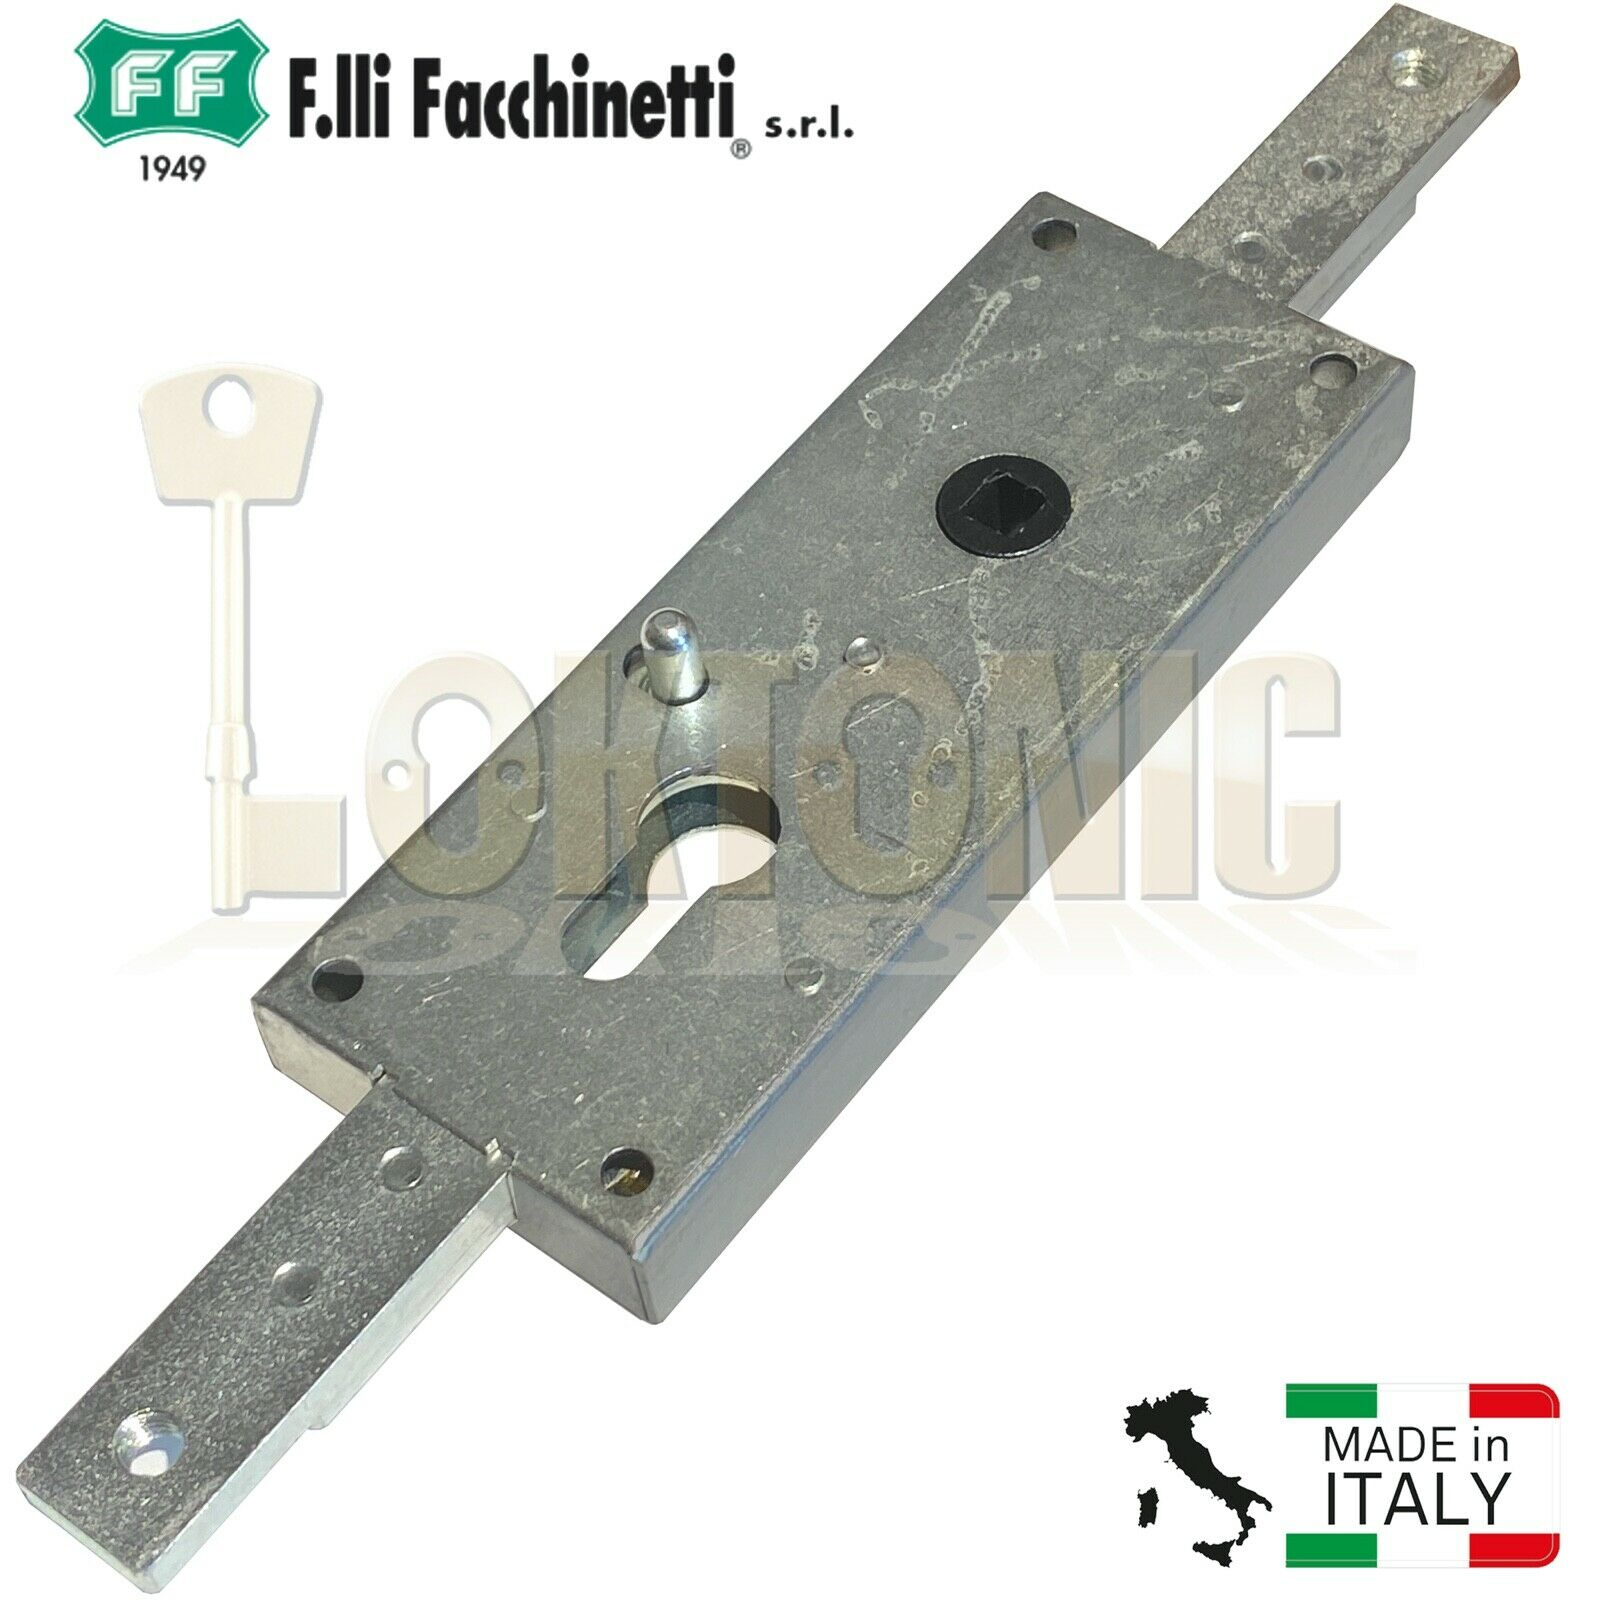 Facchinetti Euro Lockcase Up and Over Garage Door lock Unlock Lever 8mm Spindle